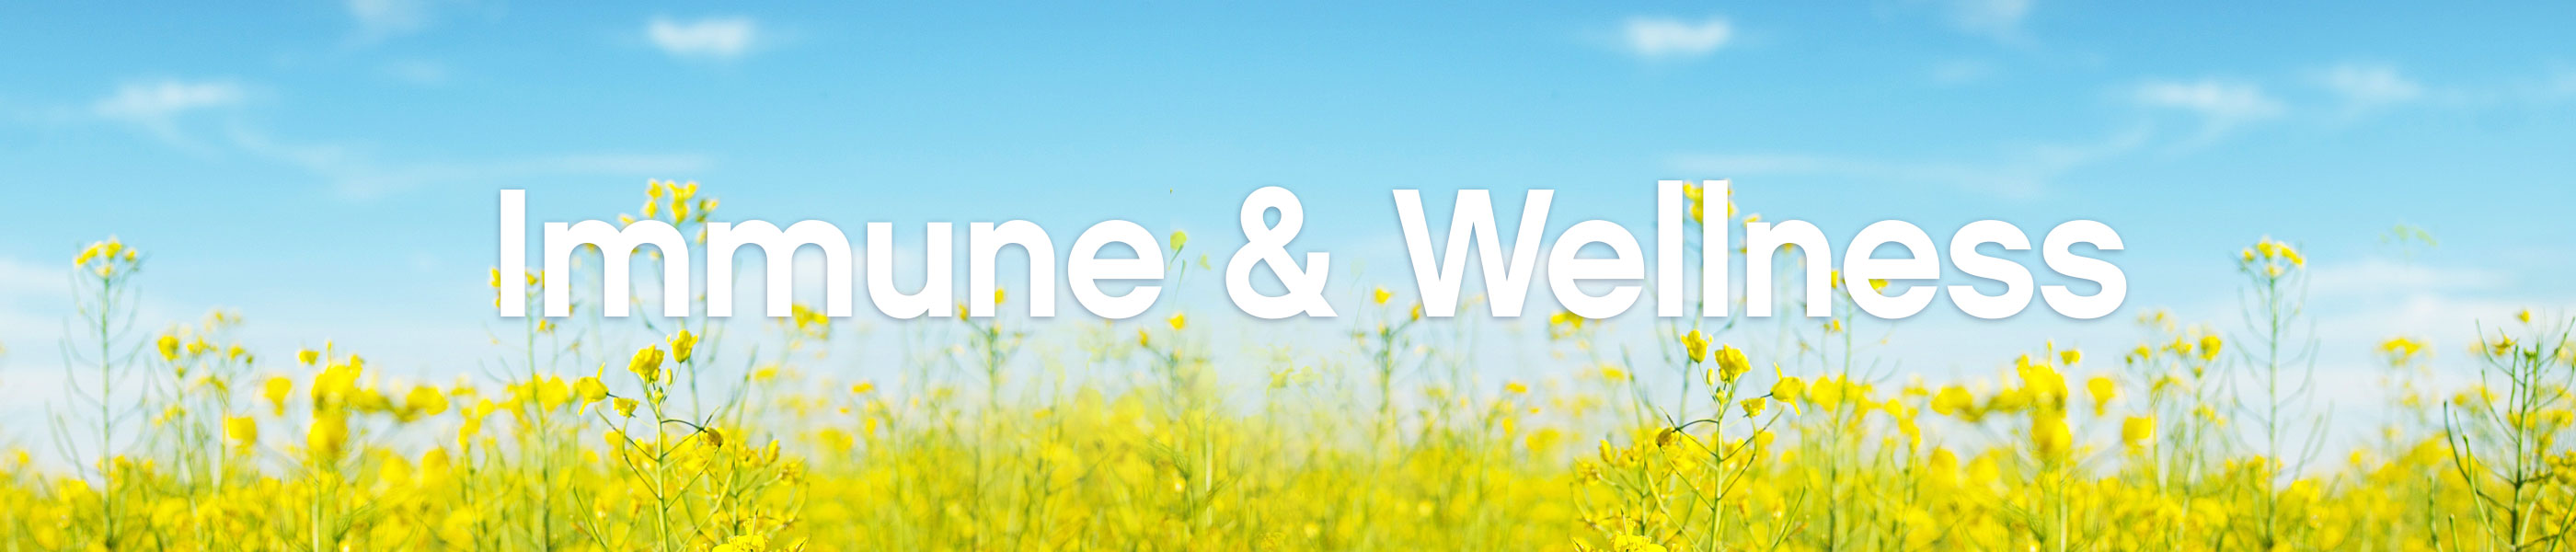 Immune & Wellness header image